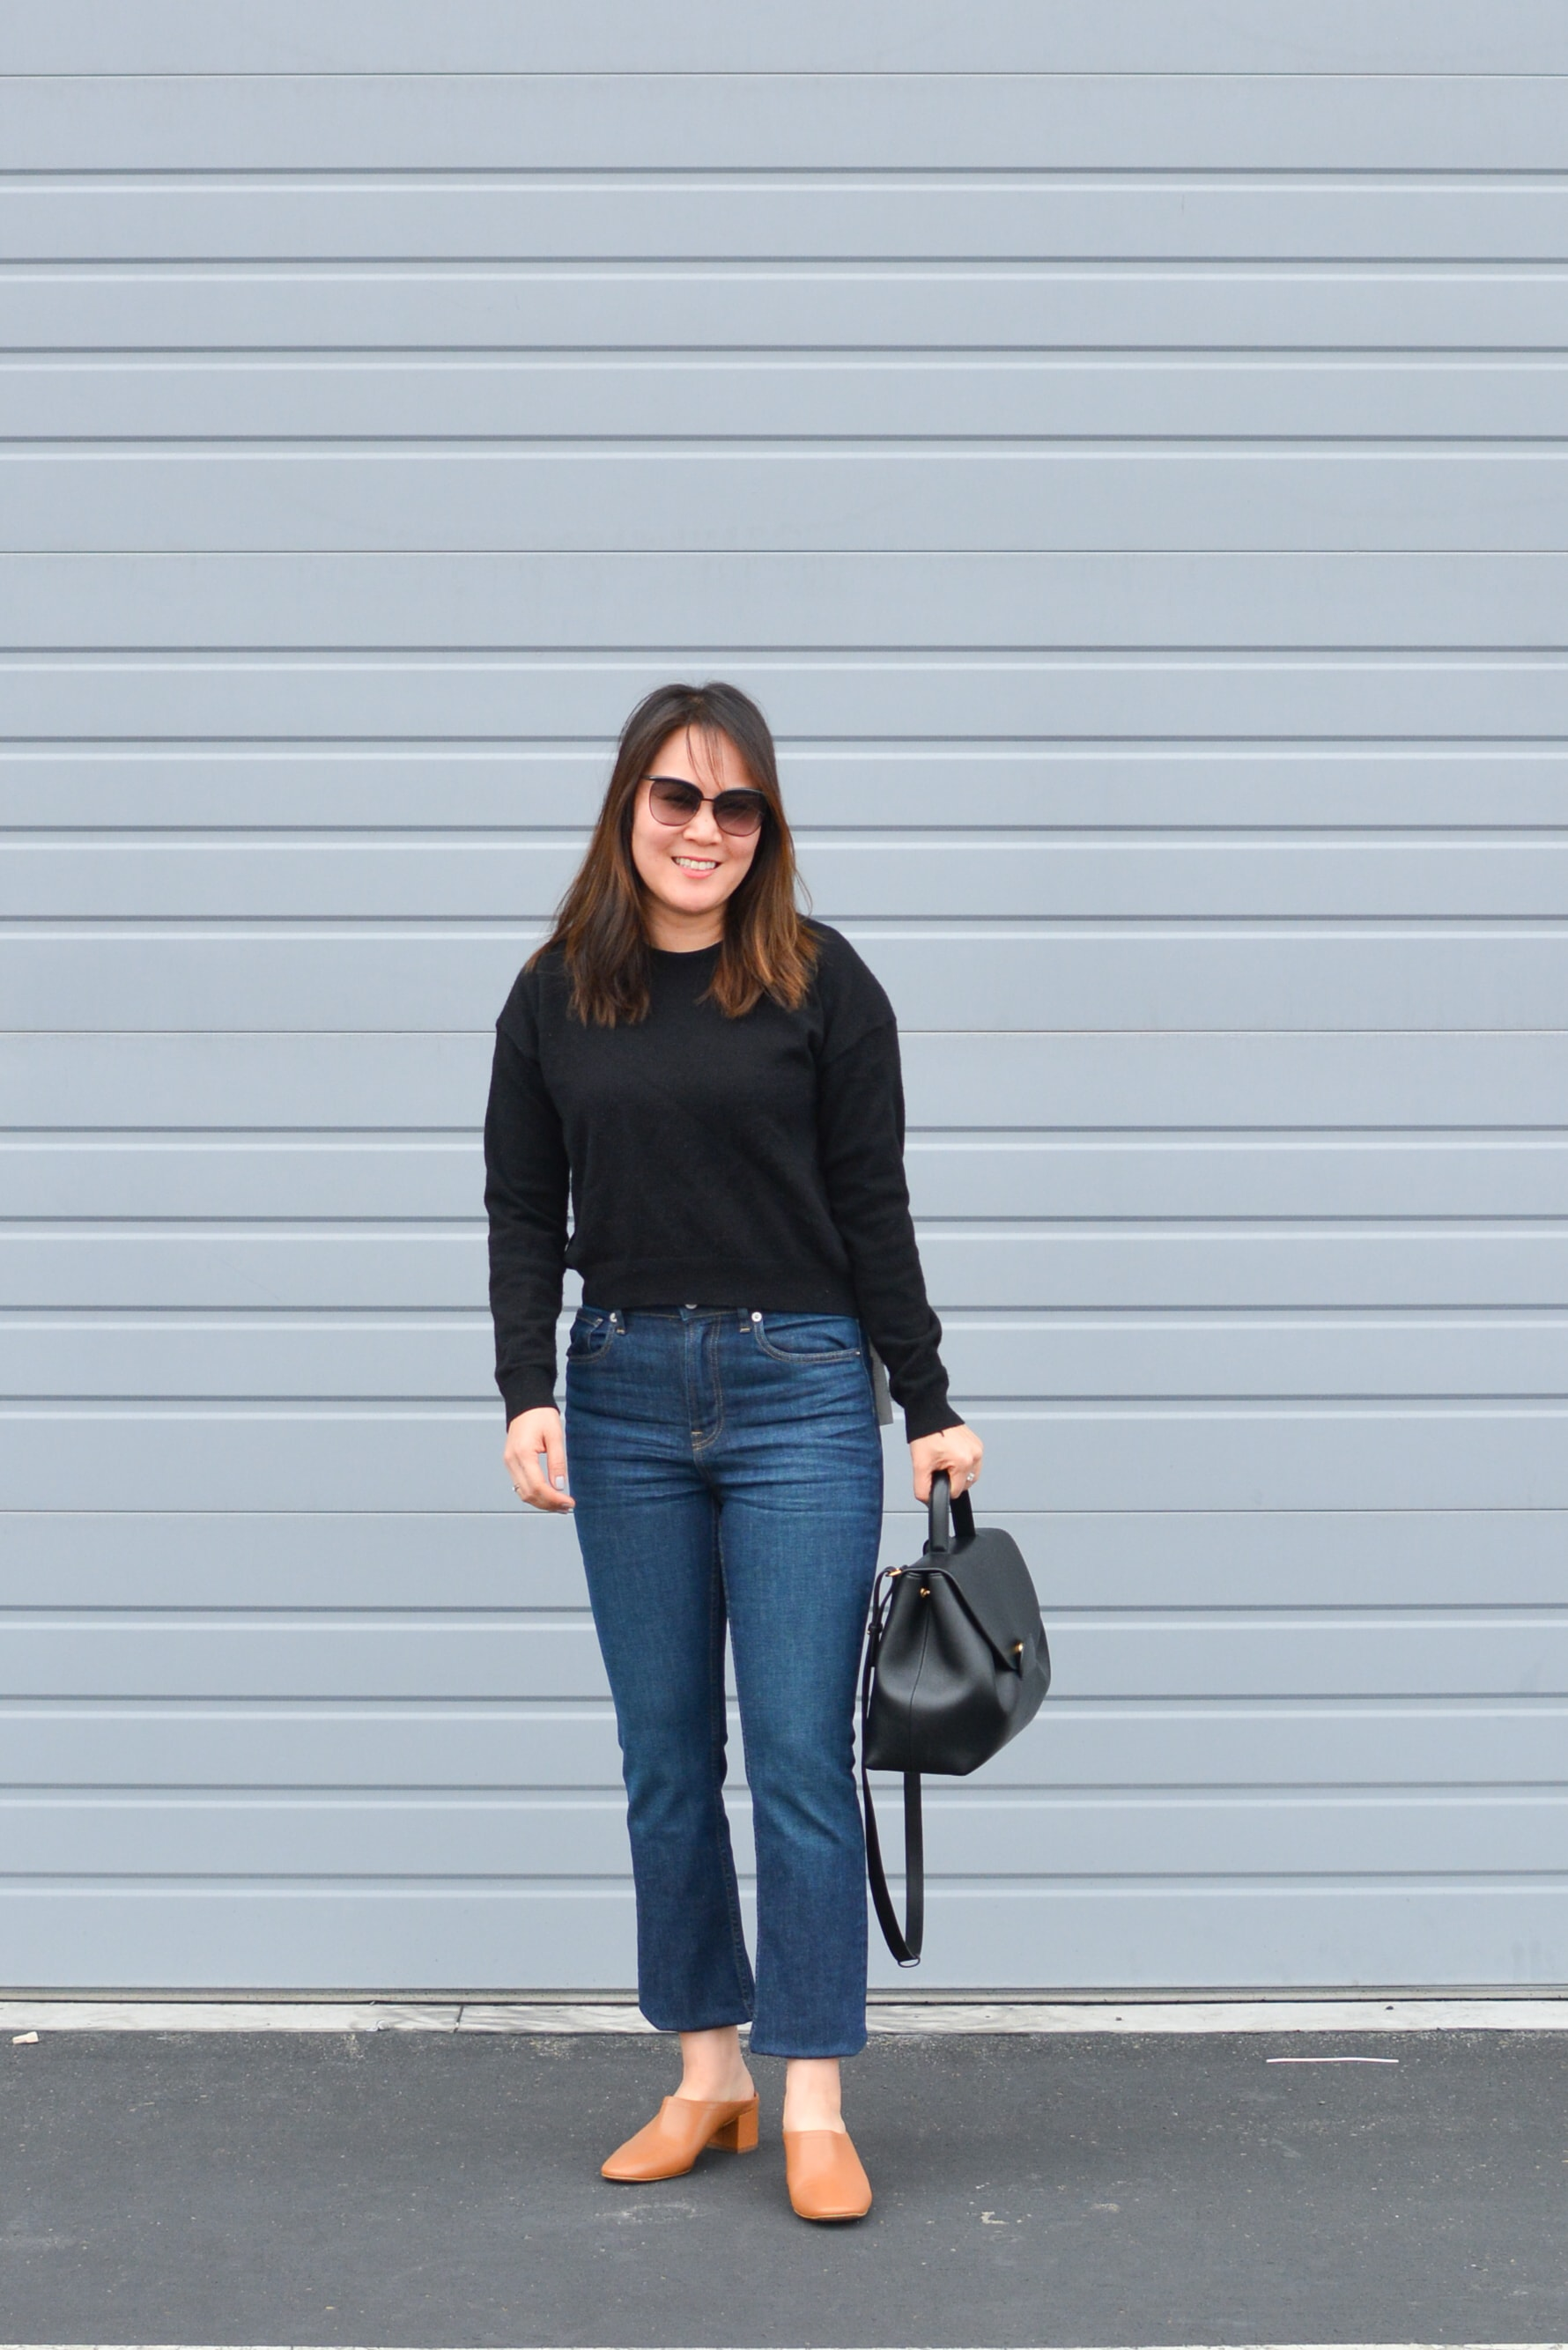 Everlane Review The Kick Crop Jeans (1 of 3)-min.jpg